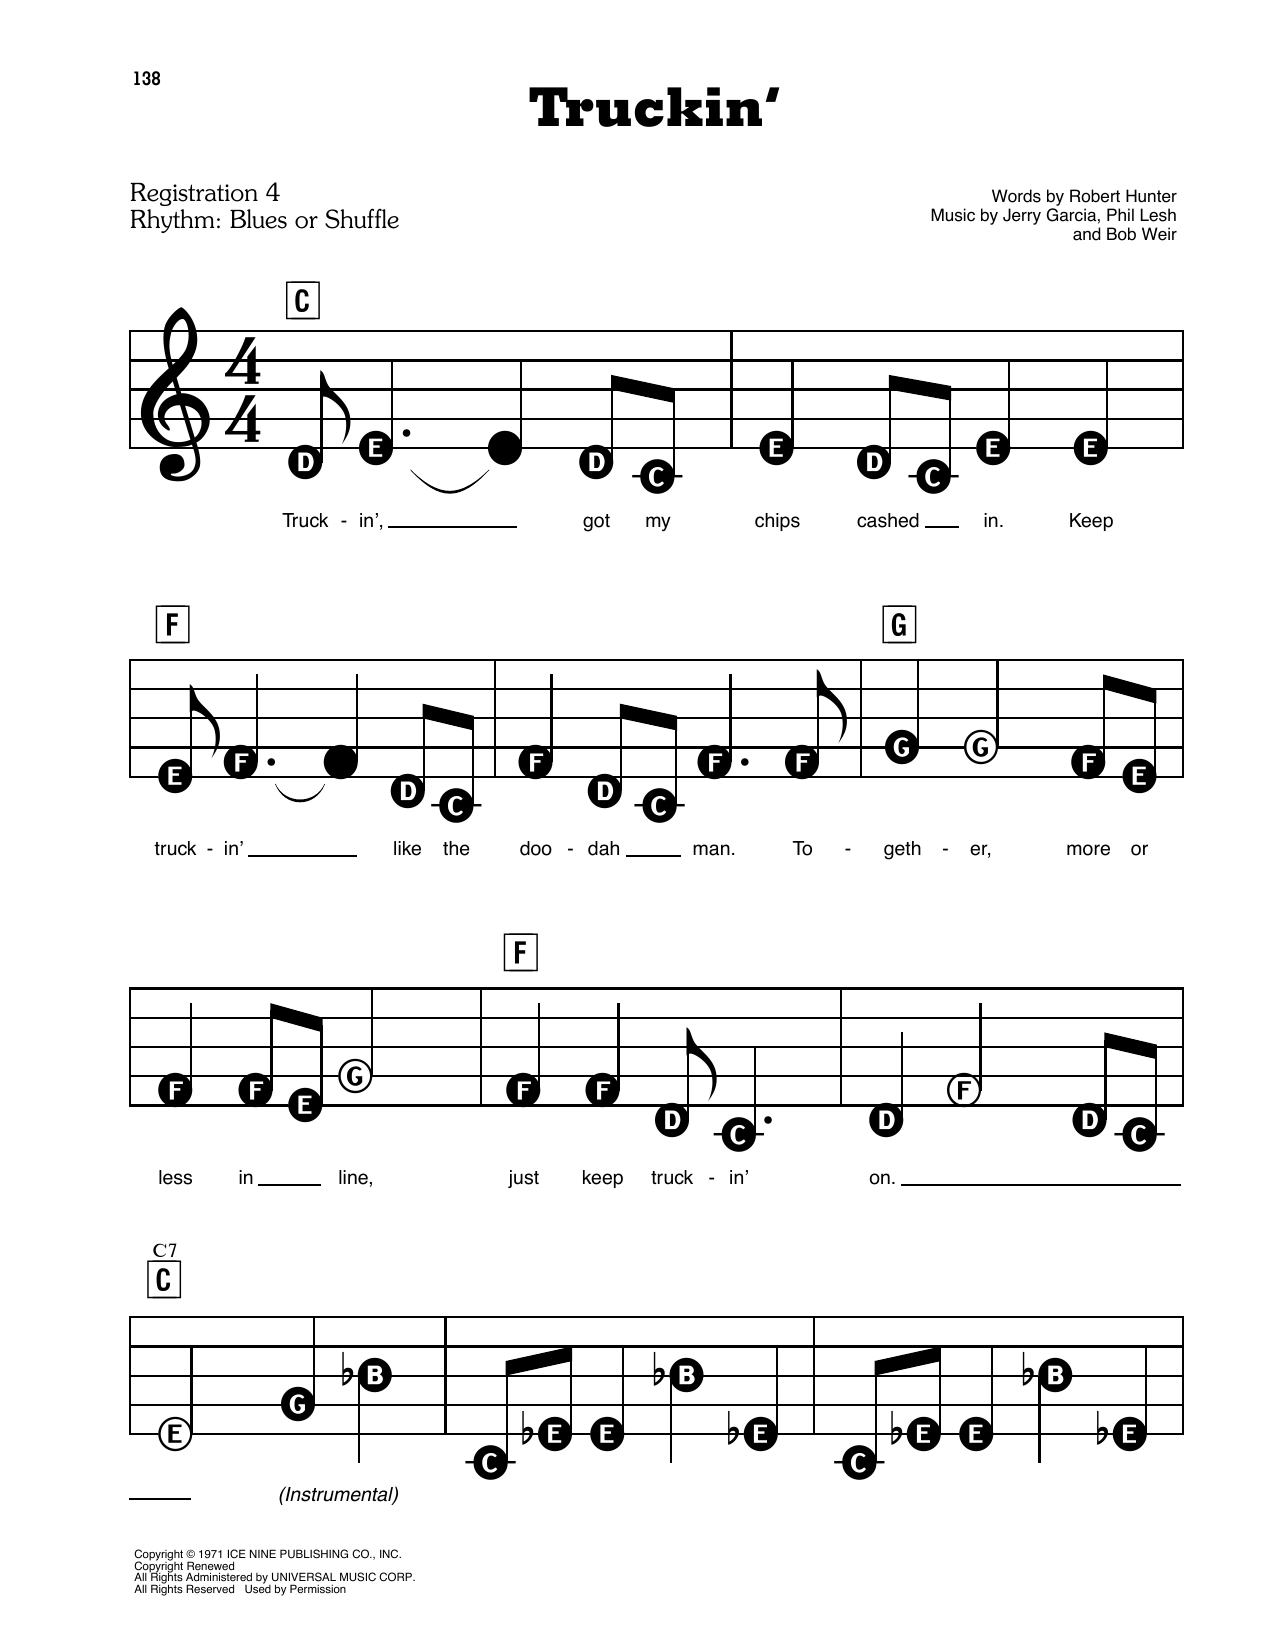 Truckin' Sheet Music